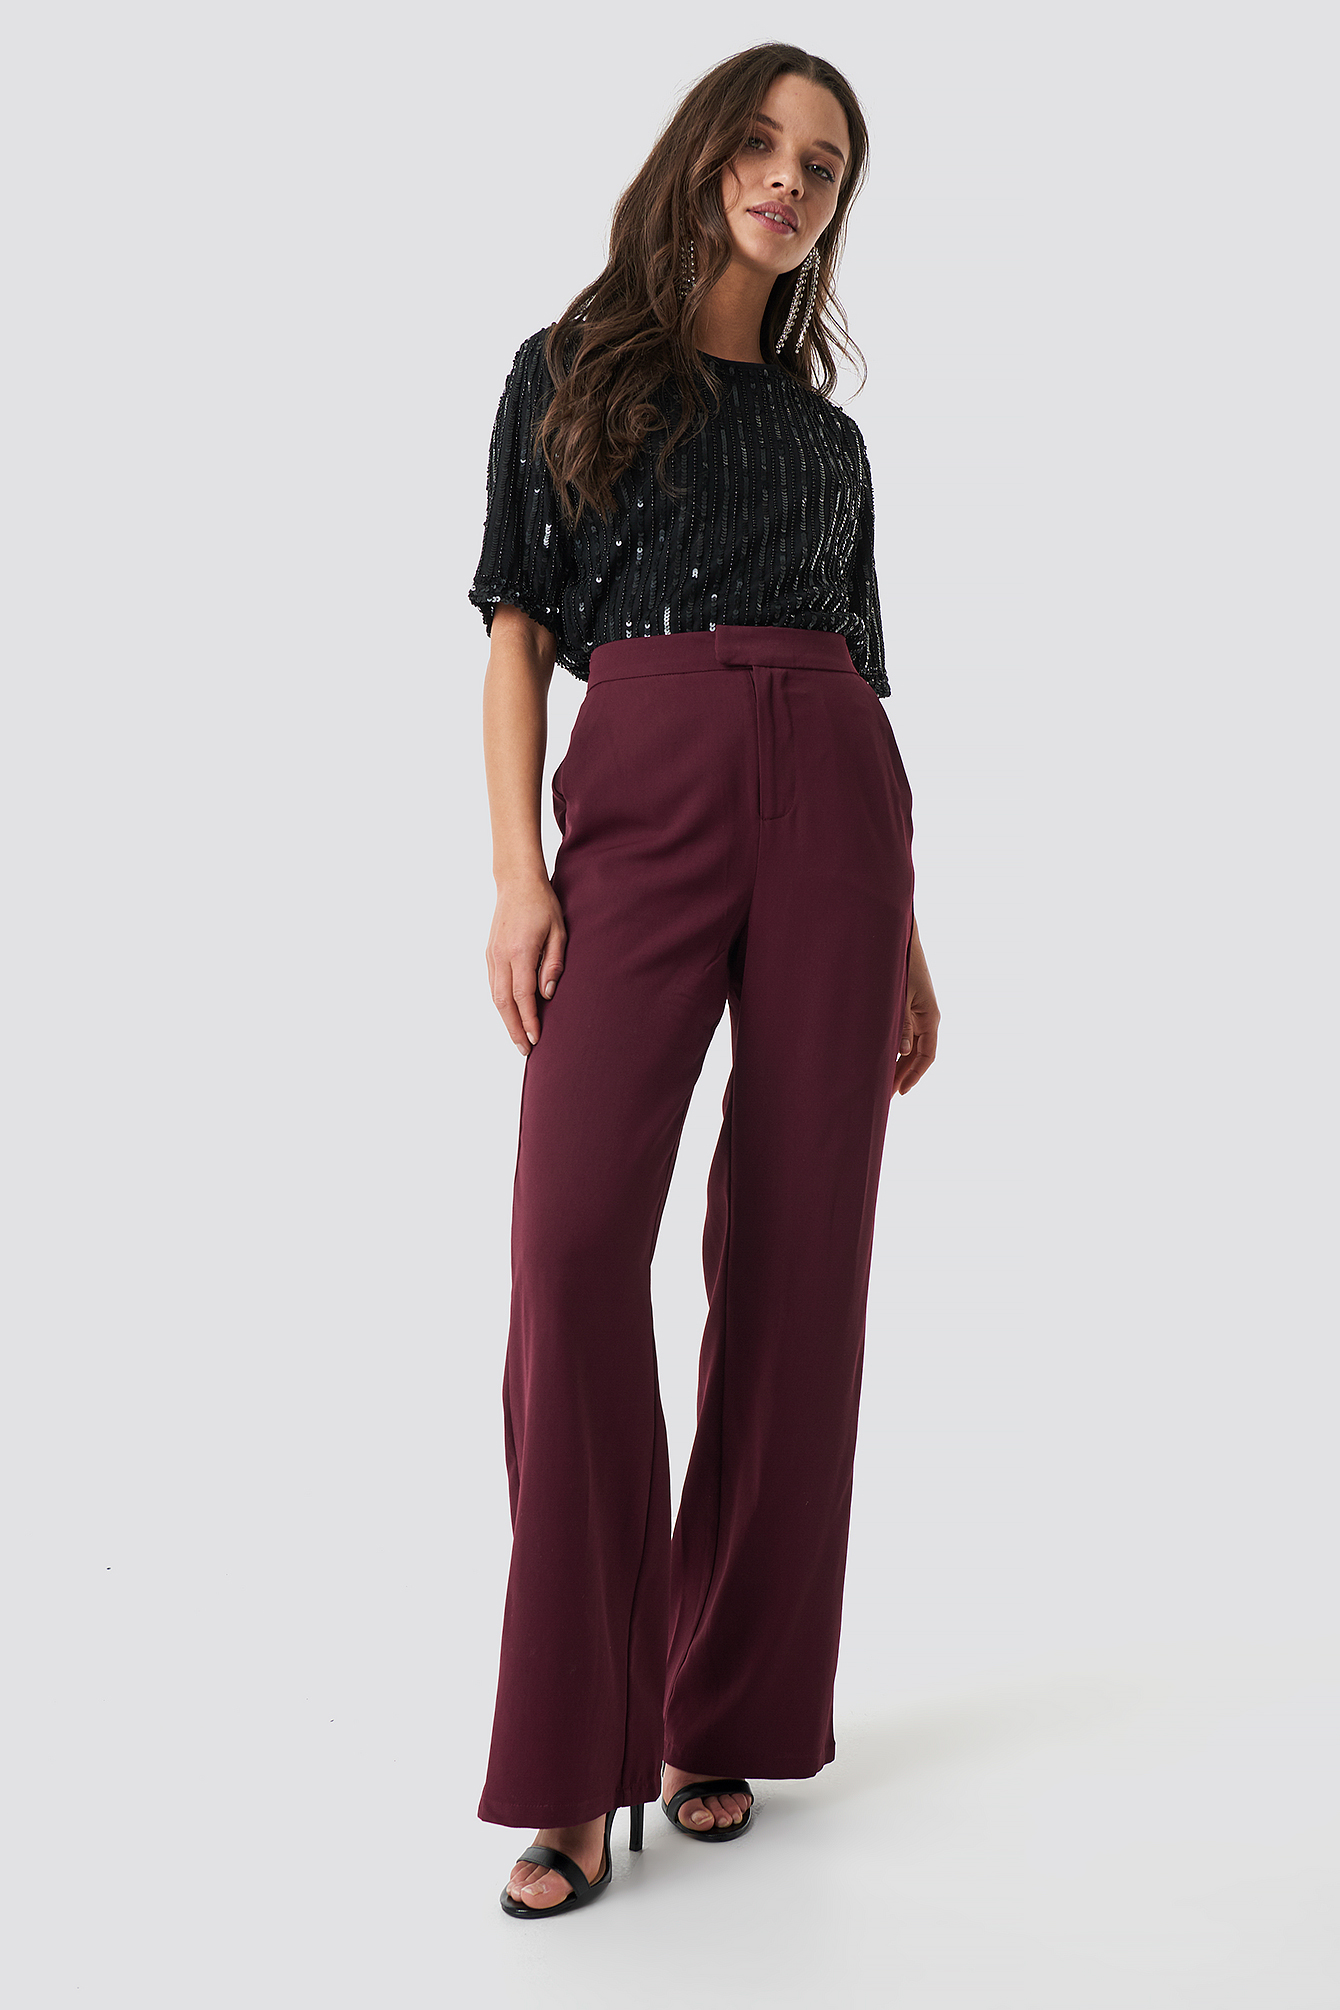 na-kd classic -  Wide Leg Tailored Pants - Red,Purple